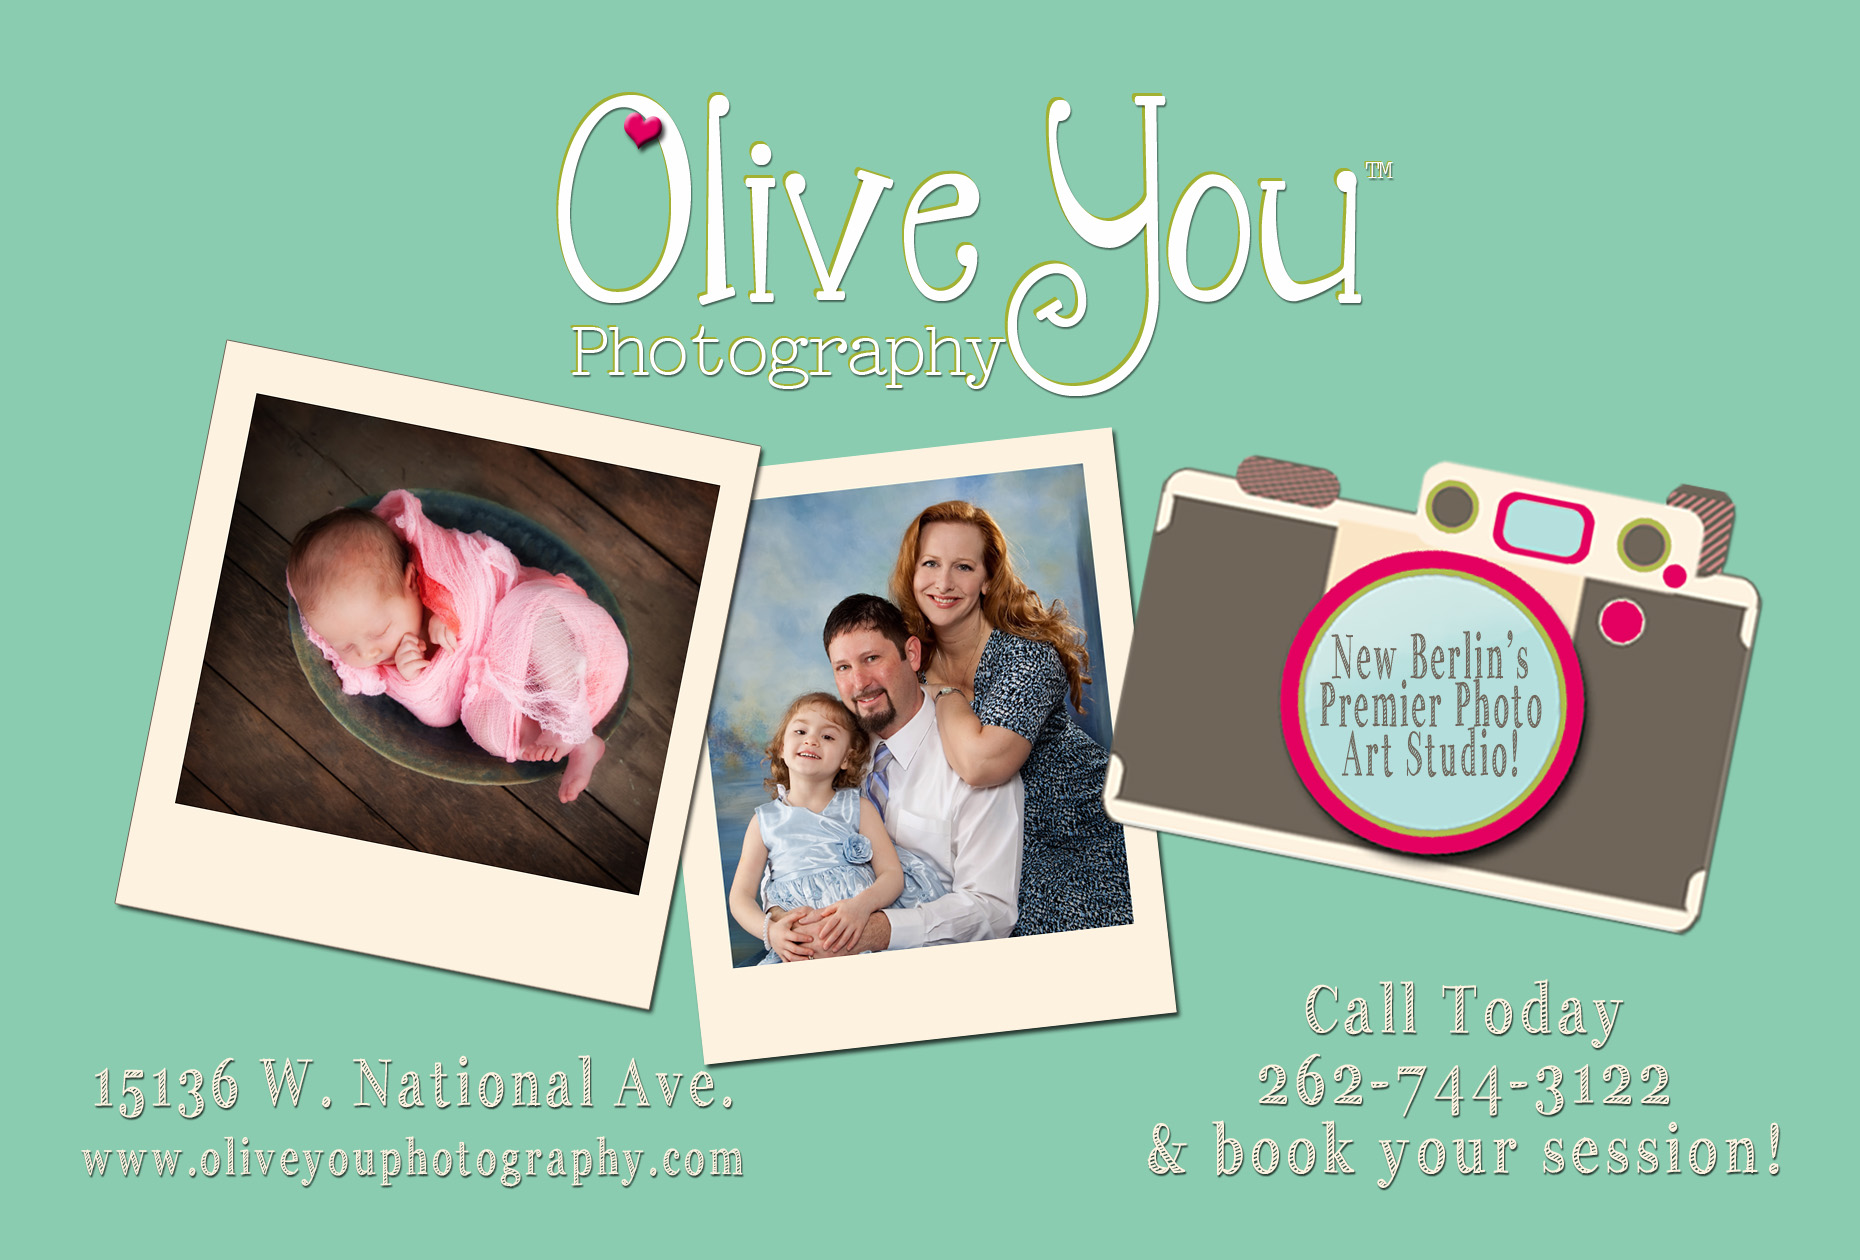 Olive You Photography in New Berlin, WI